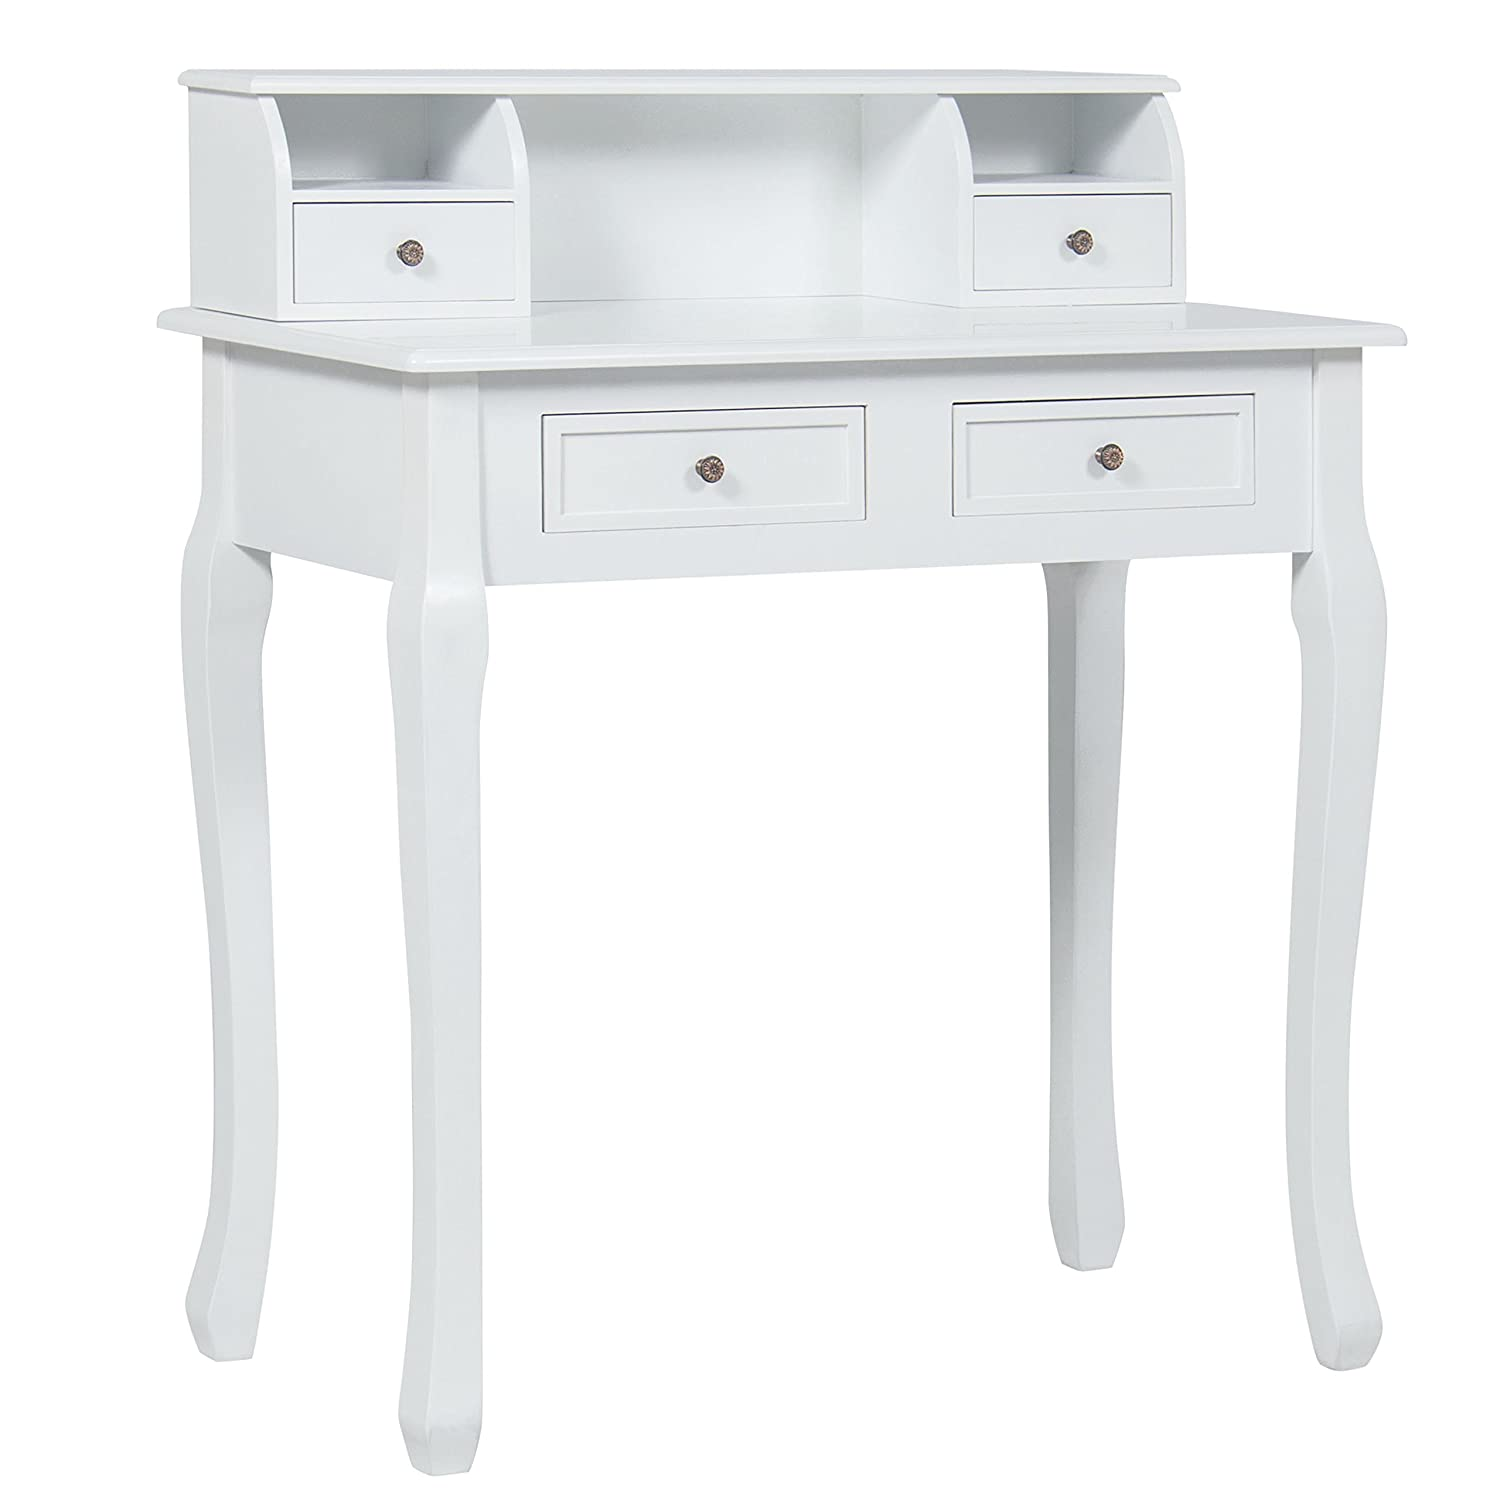 home office computer desk furniture. Amazon.com: Best Choice Products Home Office Furniture Writing Desk Work Station Computer Laptop Table, White: Kitchen \u0026 Dining E